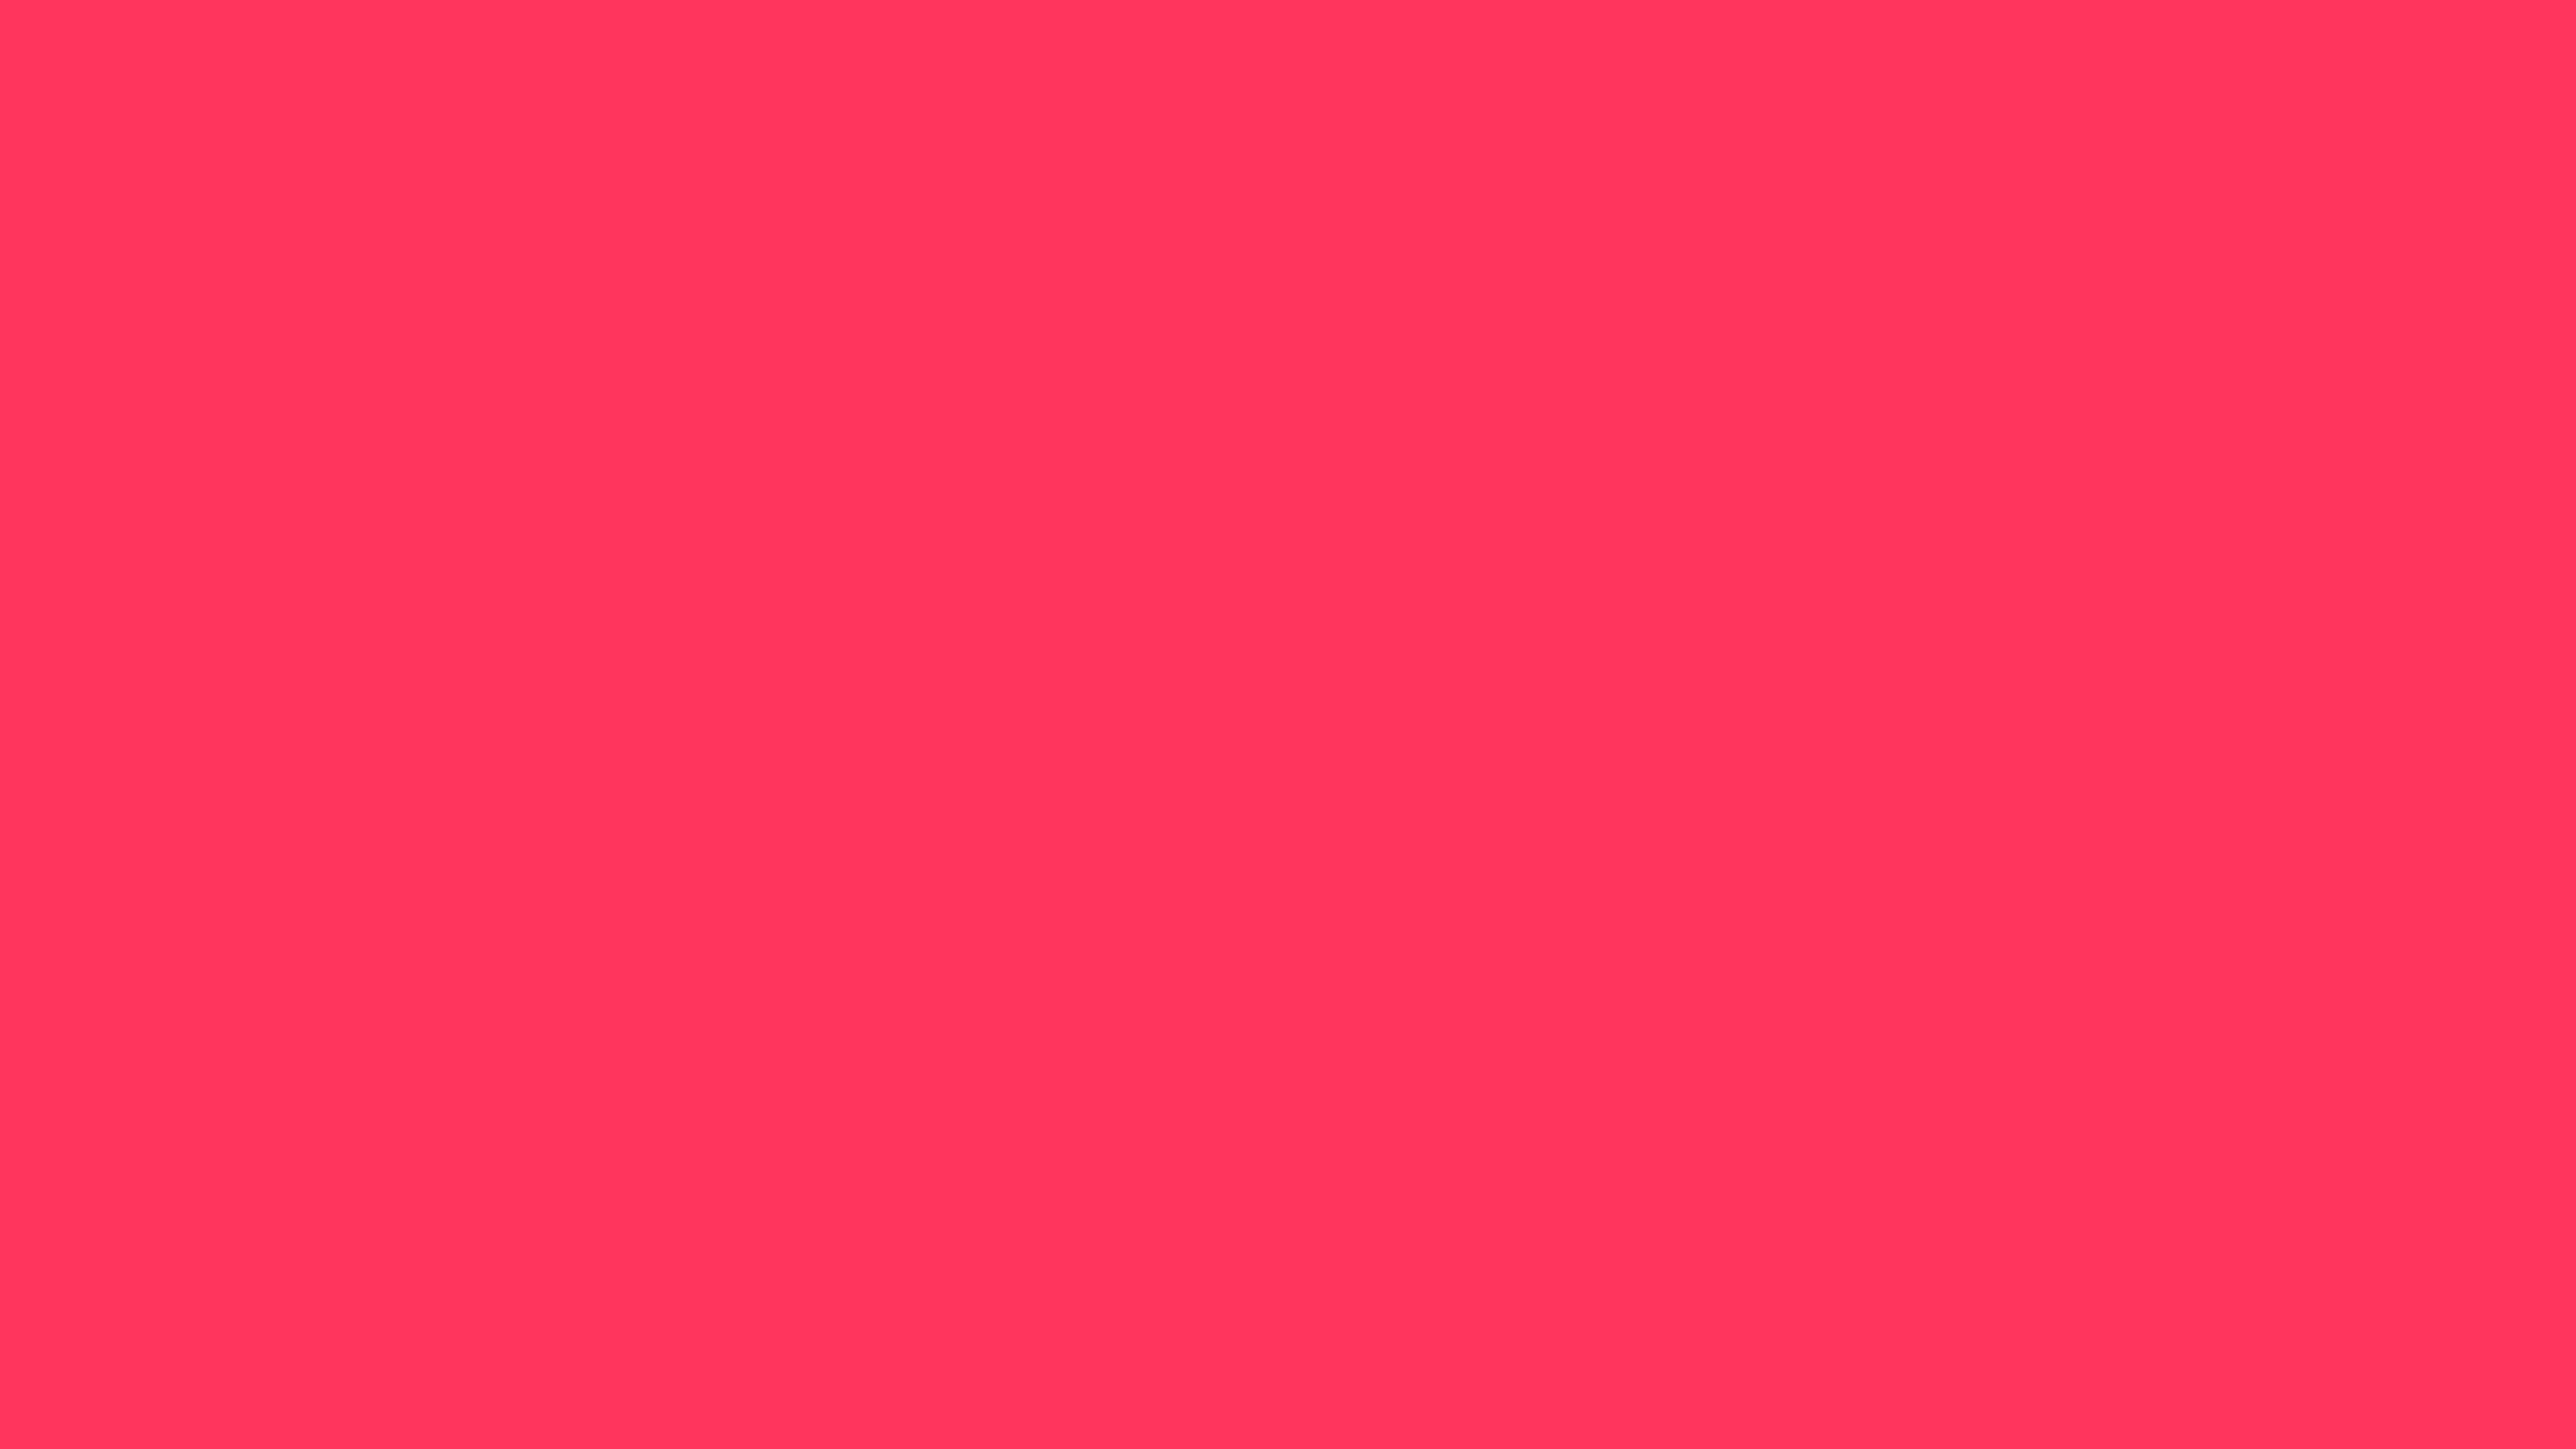 5120x2880 Radical Red Solid Color Background